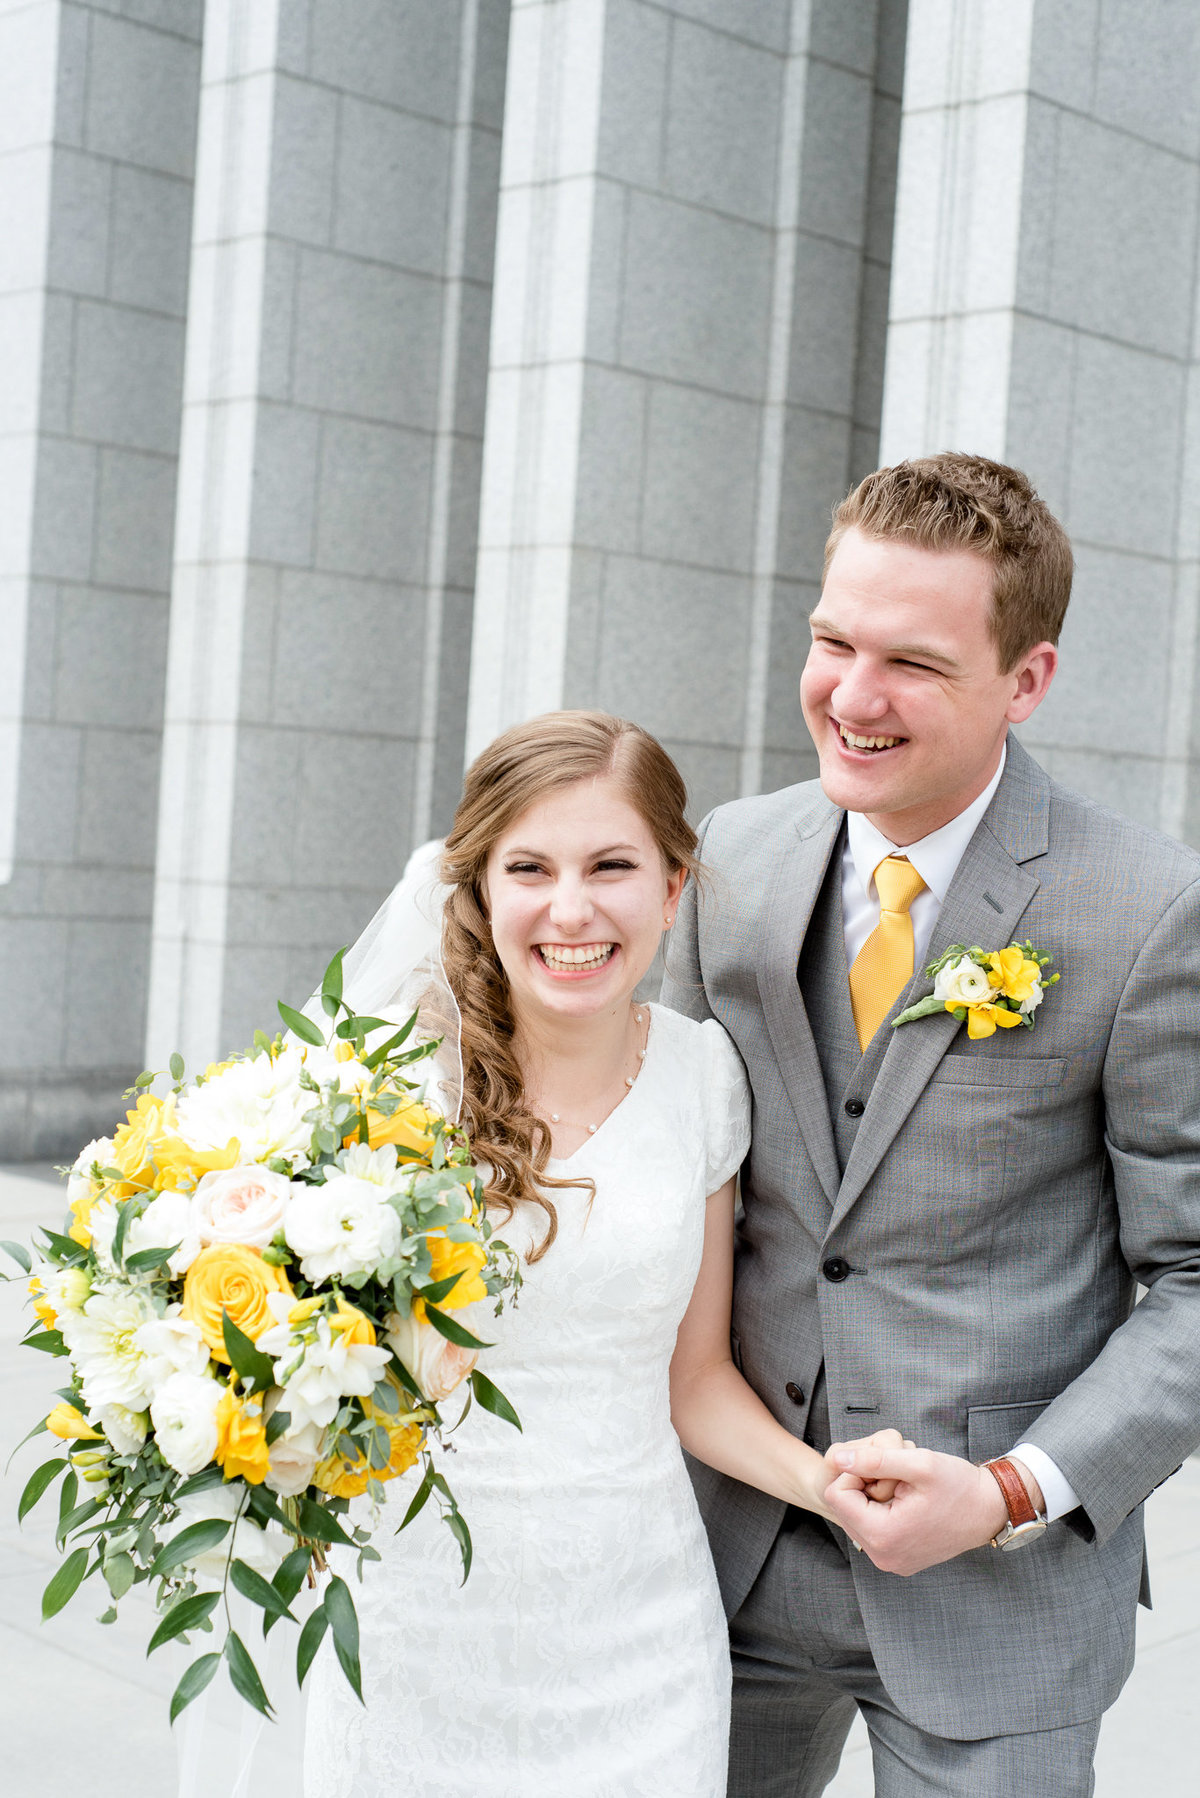 Bride and groom smile as they exit the Draper Utah Temple